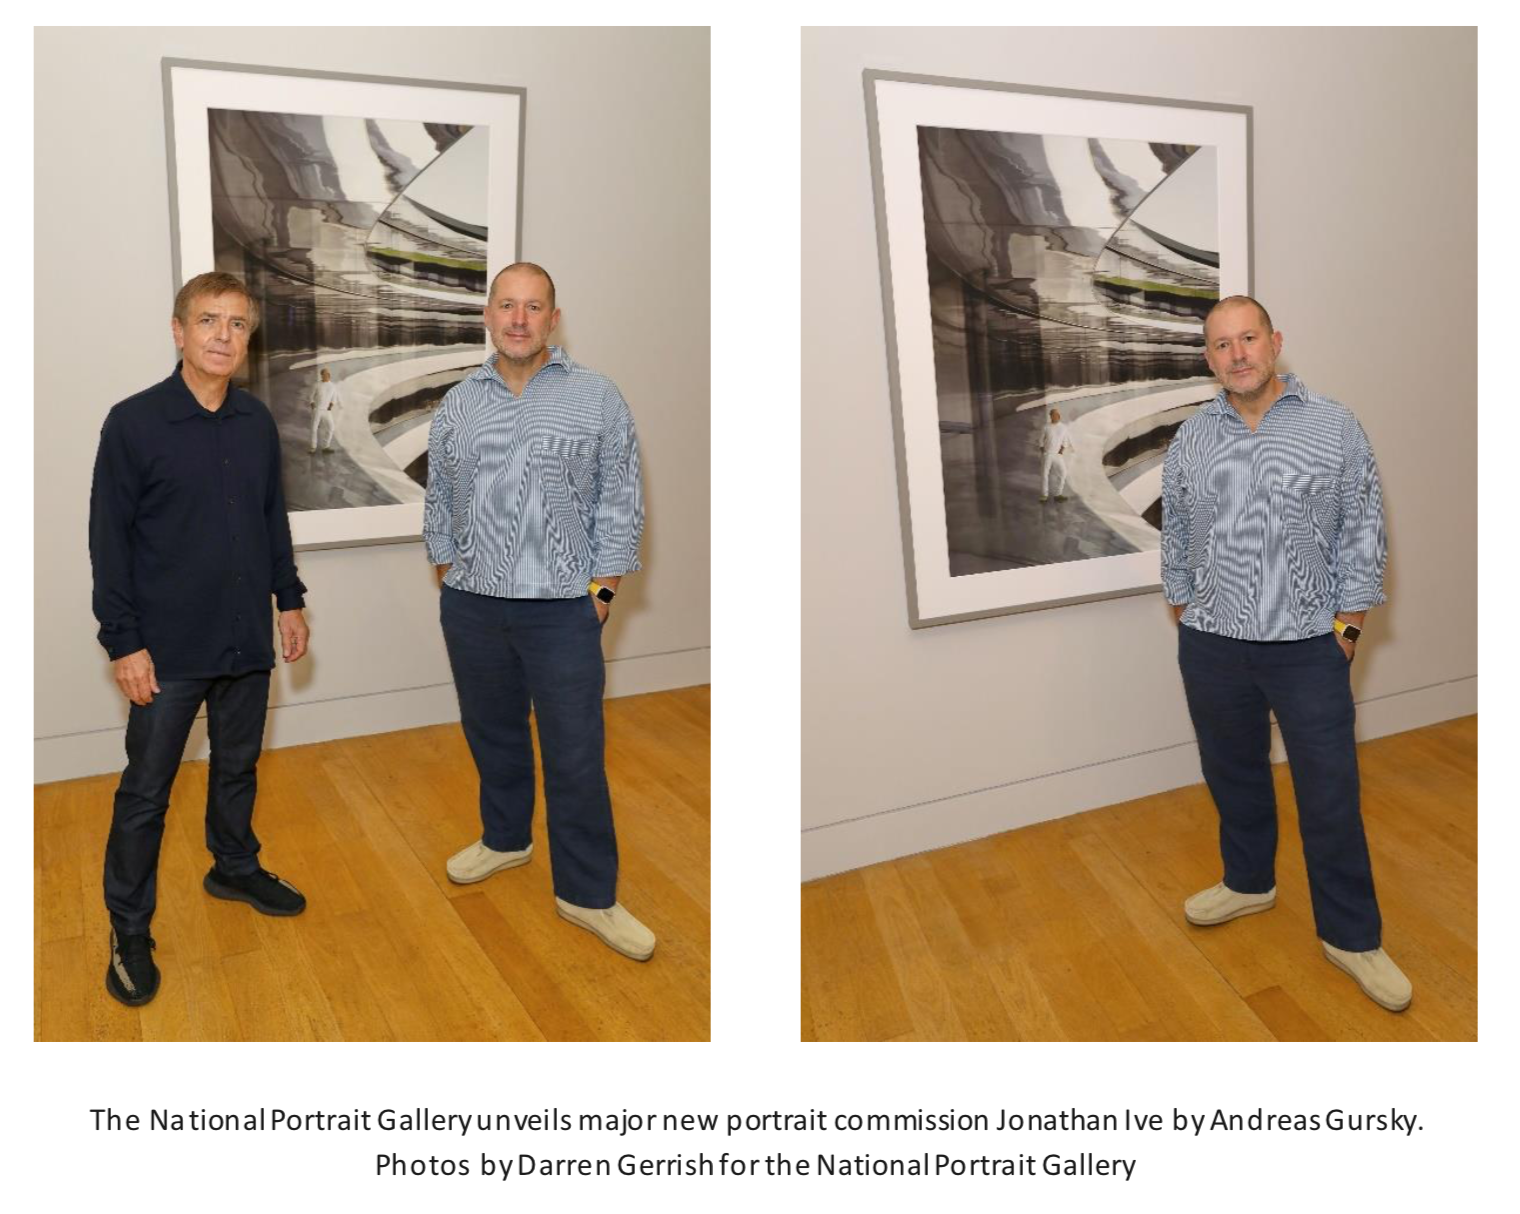 Jony Ive portrait with Andreas Gursky